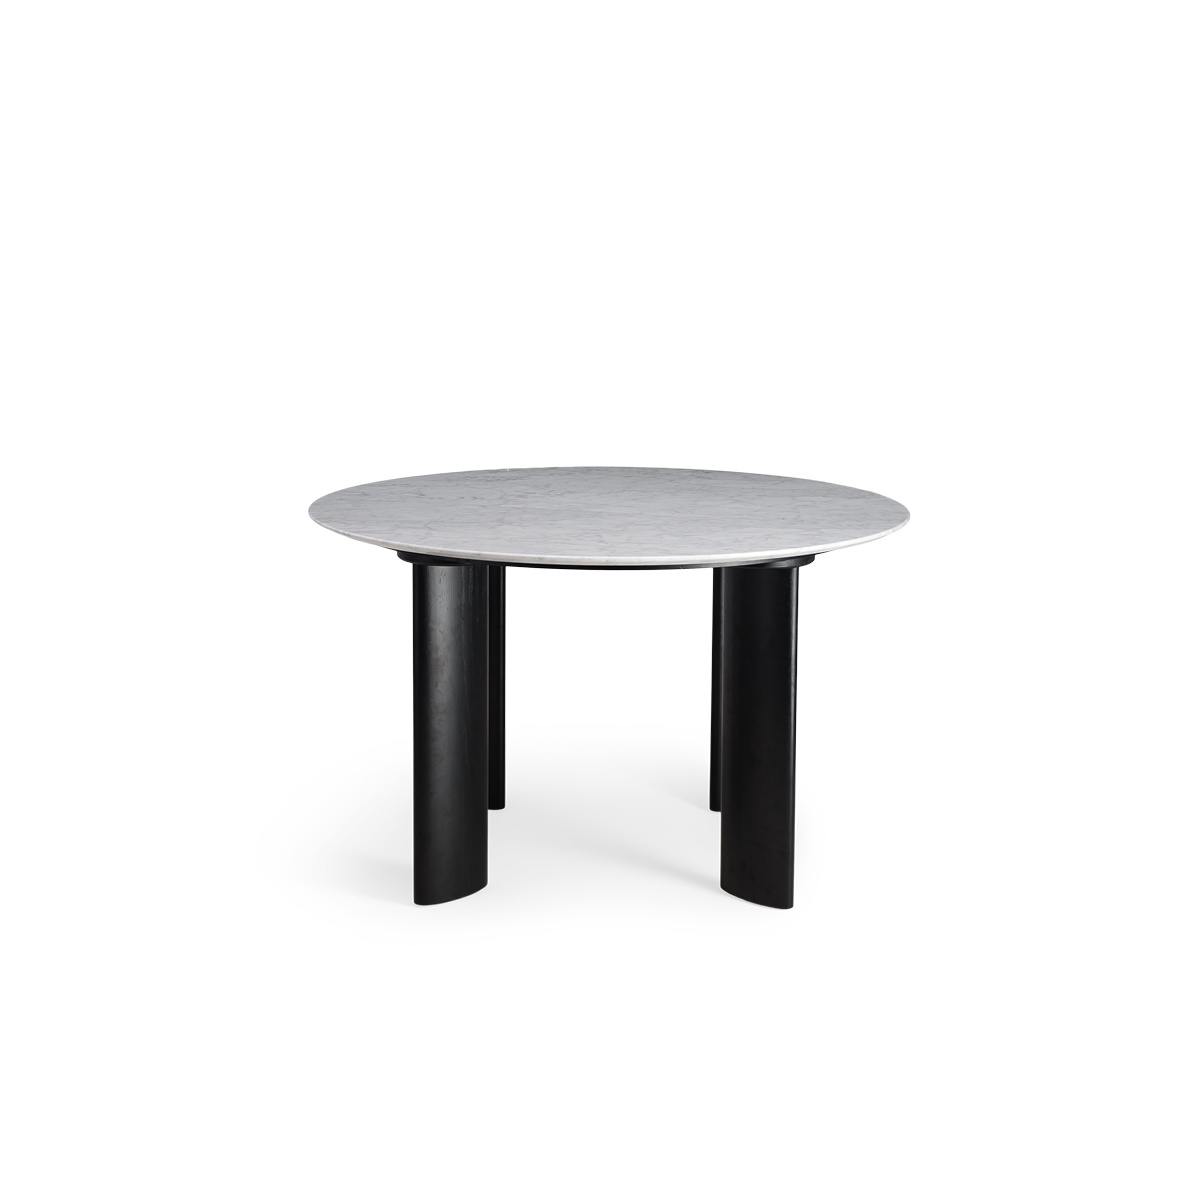 Carlotta Alta Dining Table White Marble and Black Legs - 4 Seats